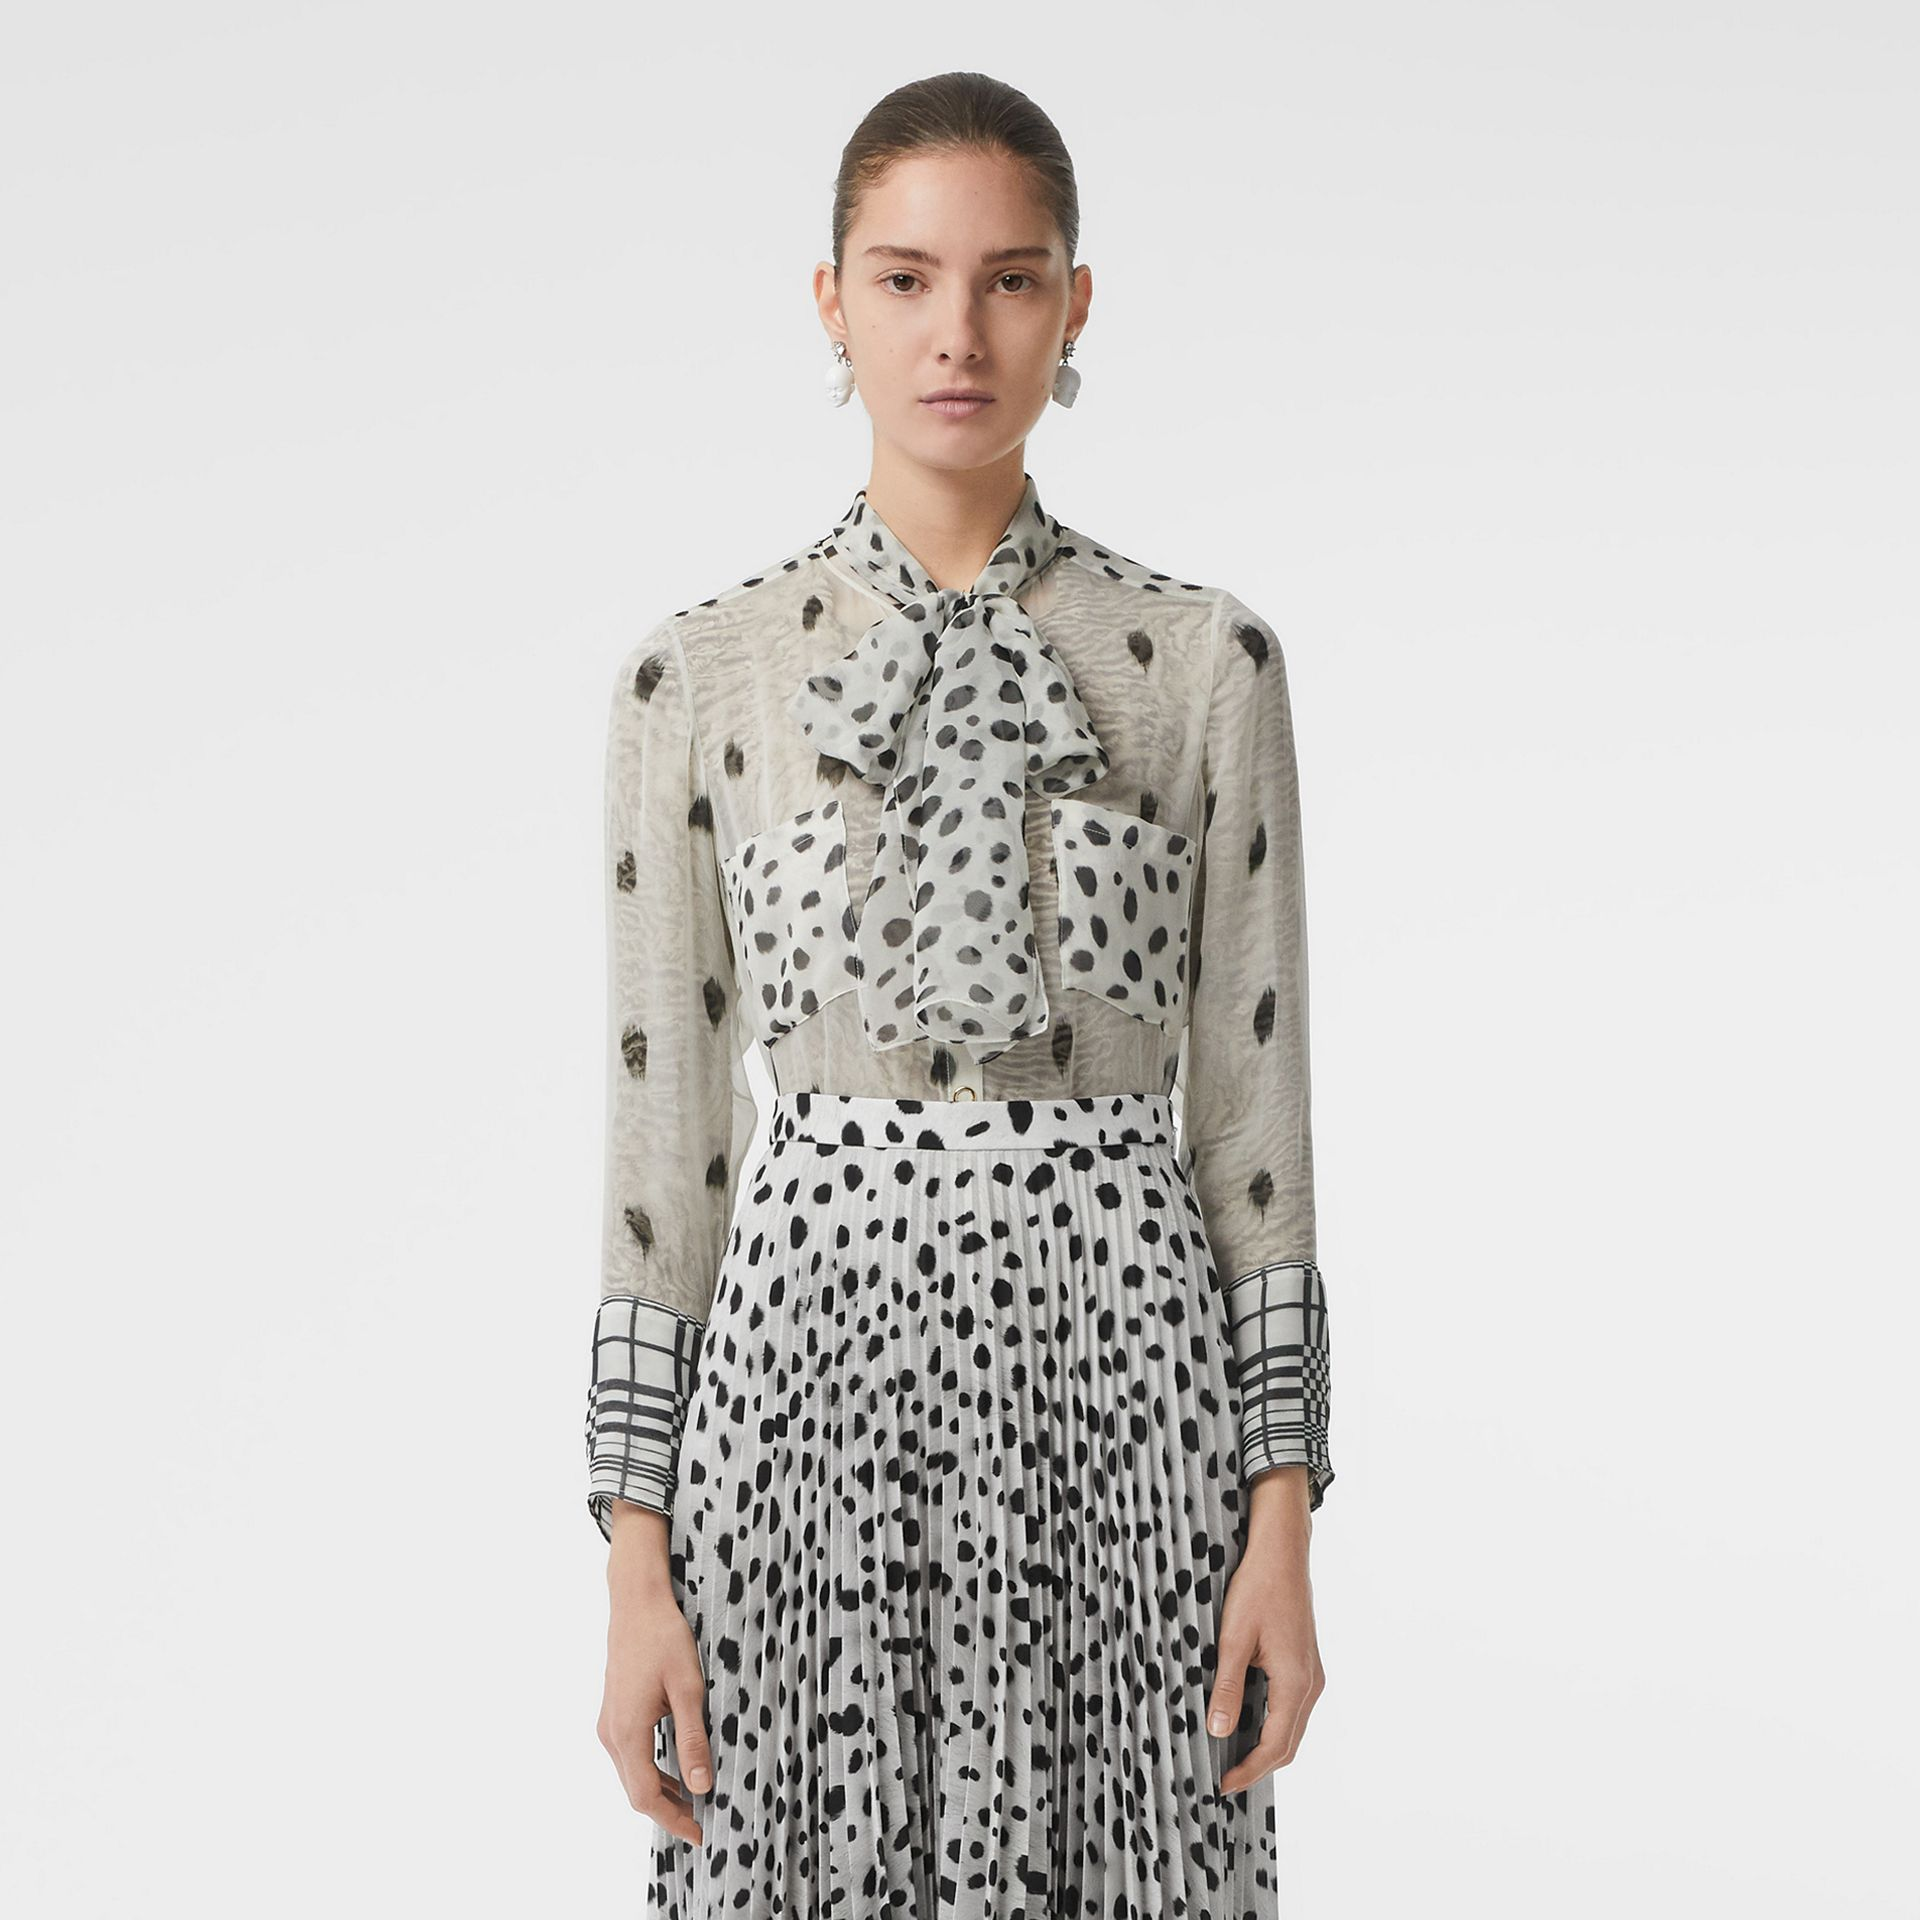 Dalmatian Print Crepe Pleated Skirt in Black/white - Women | Burberry United States - gallery image 5